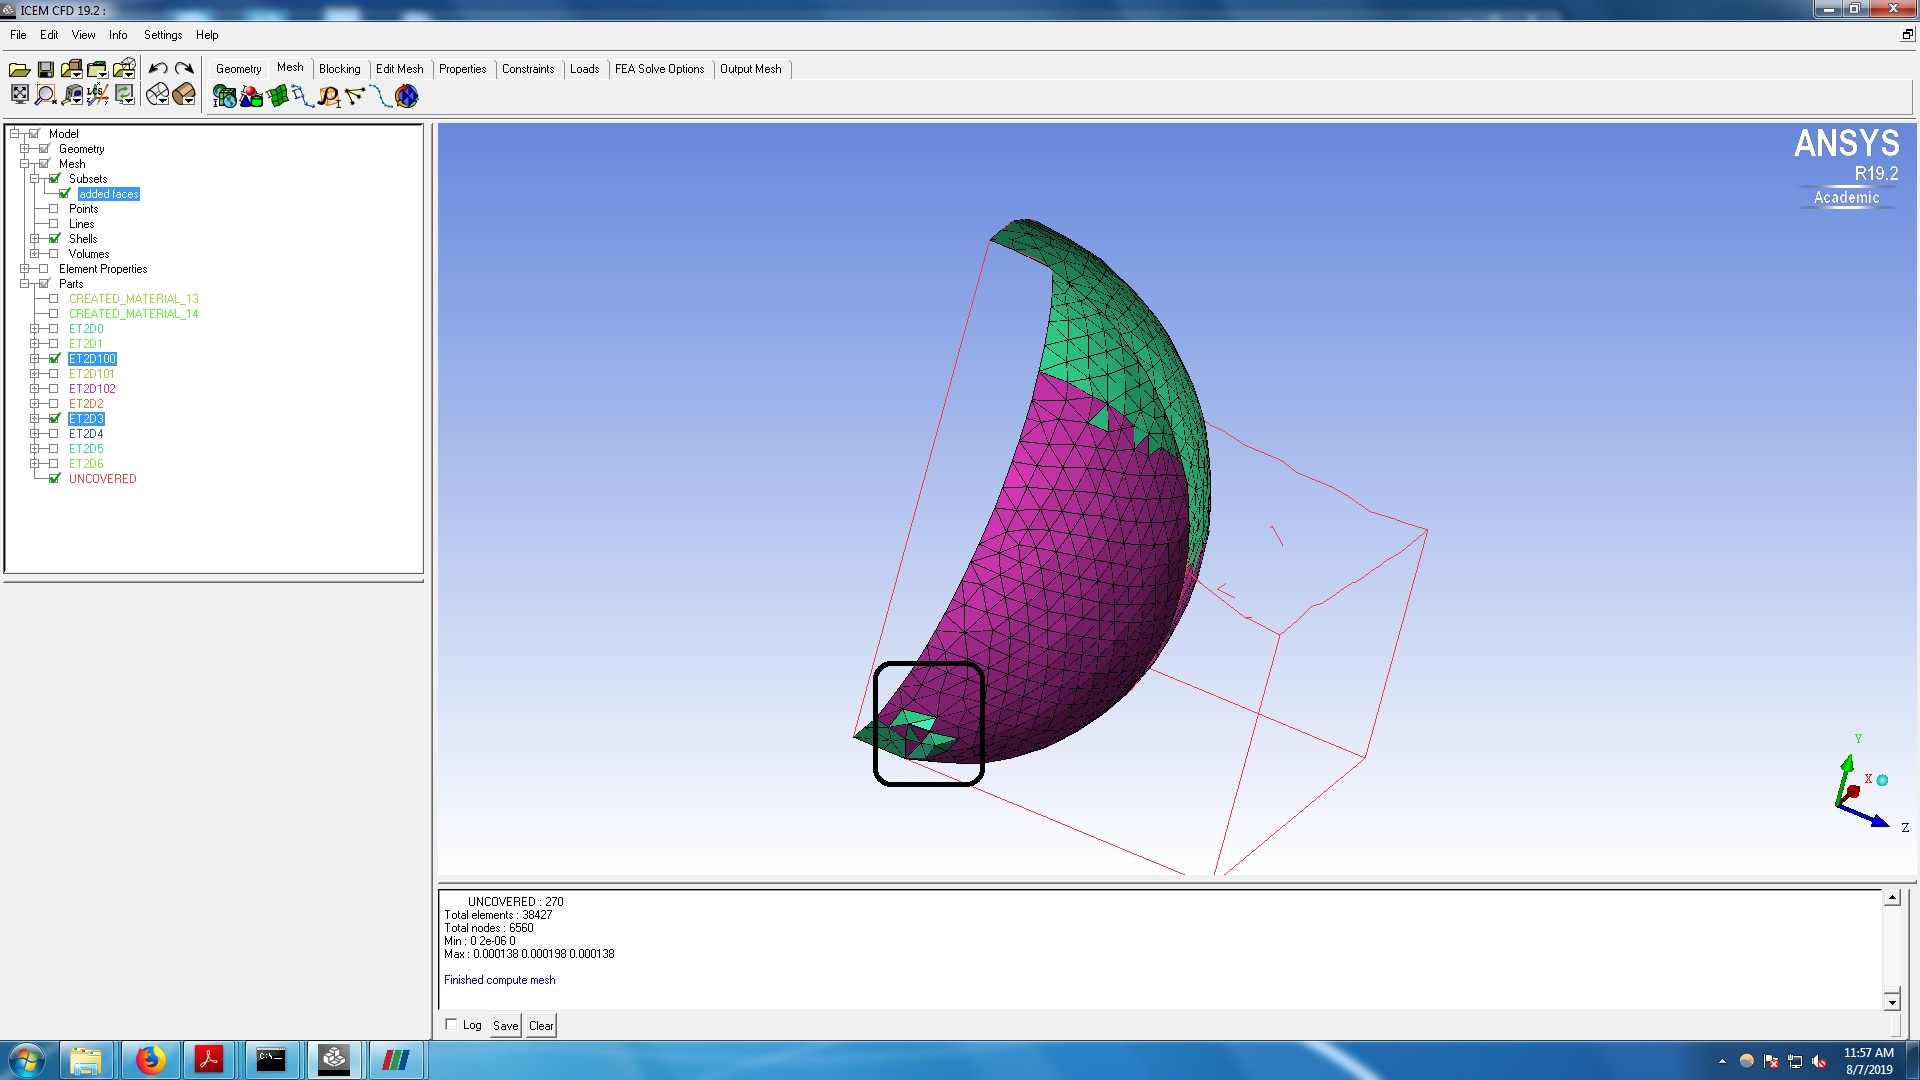 How to export domain from paraview to ANSYS or any meshing